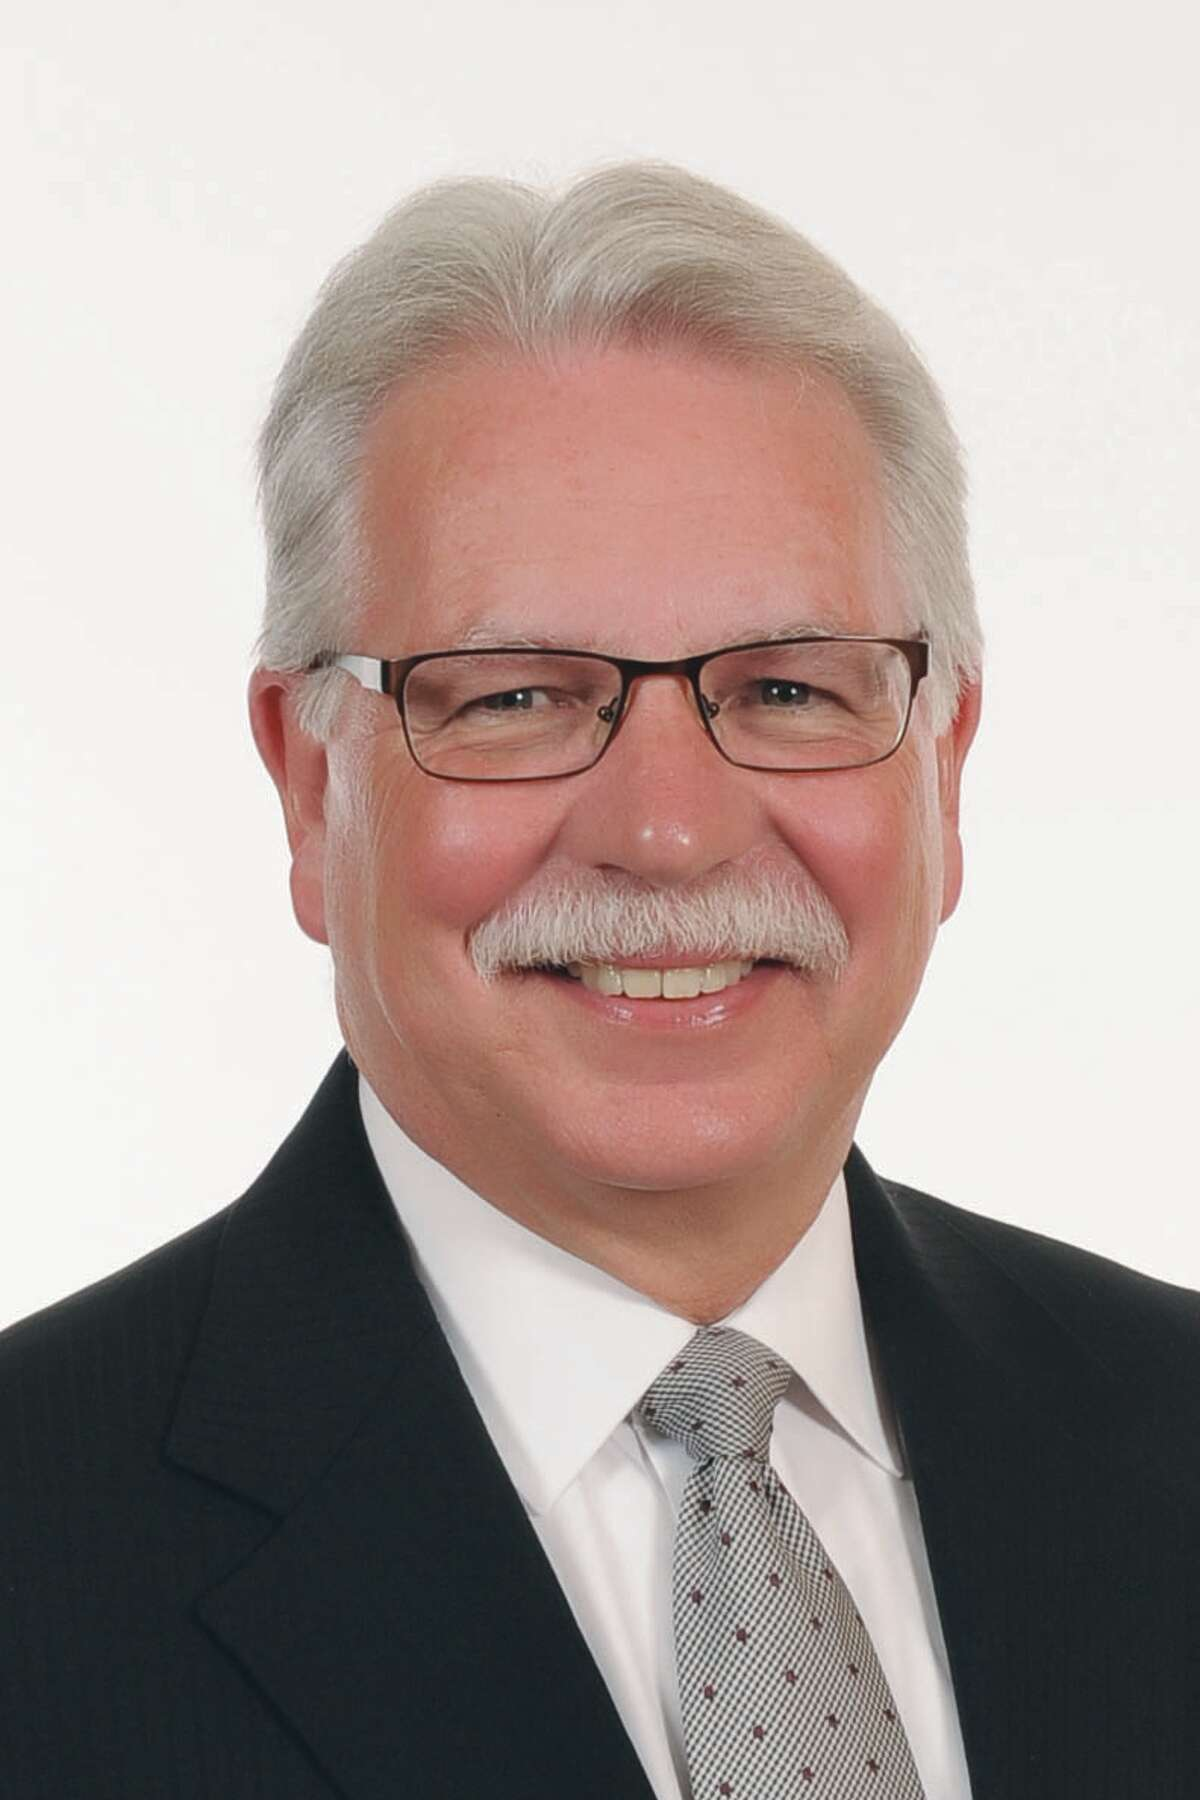 Tim Kremer, the longtime executive director of the state School Boards Association will retire at the end of the year.